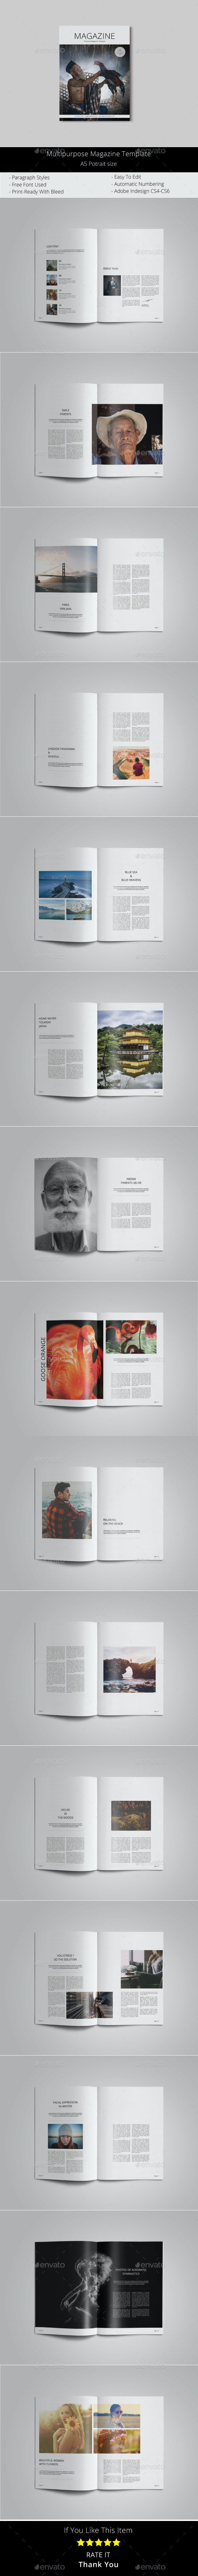 A5 Multipurpose Magazine Template - Magazines Print Templates